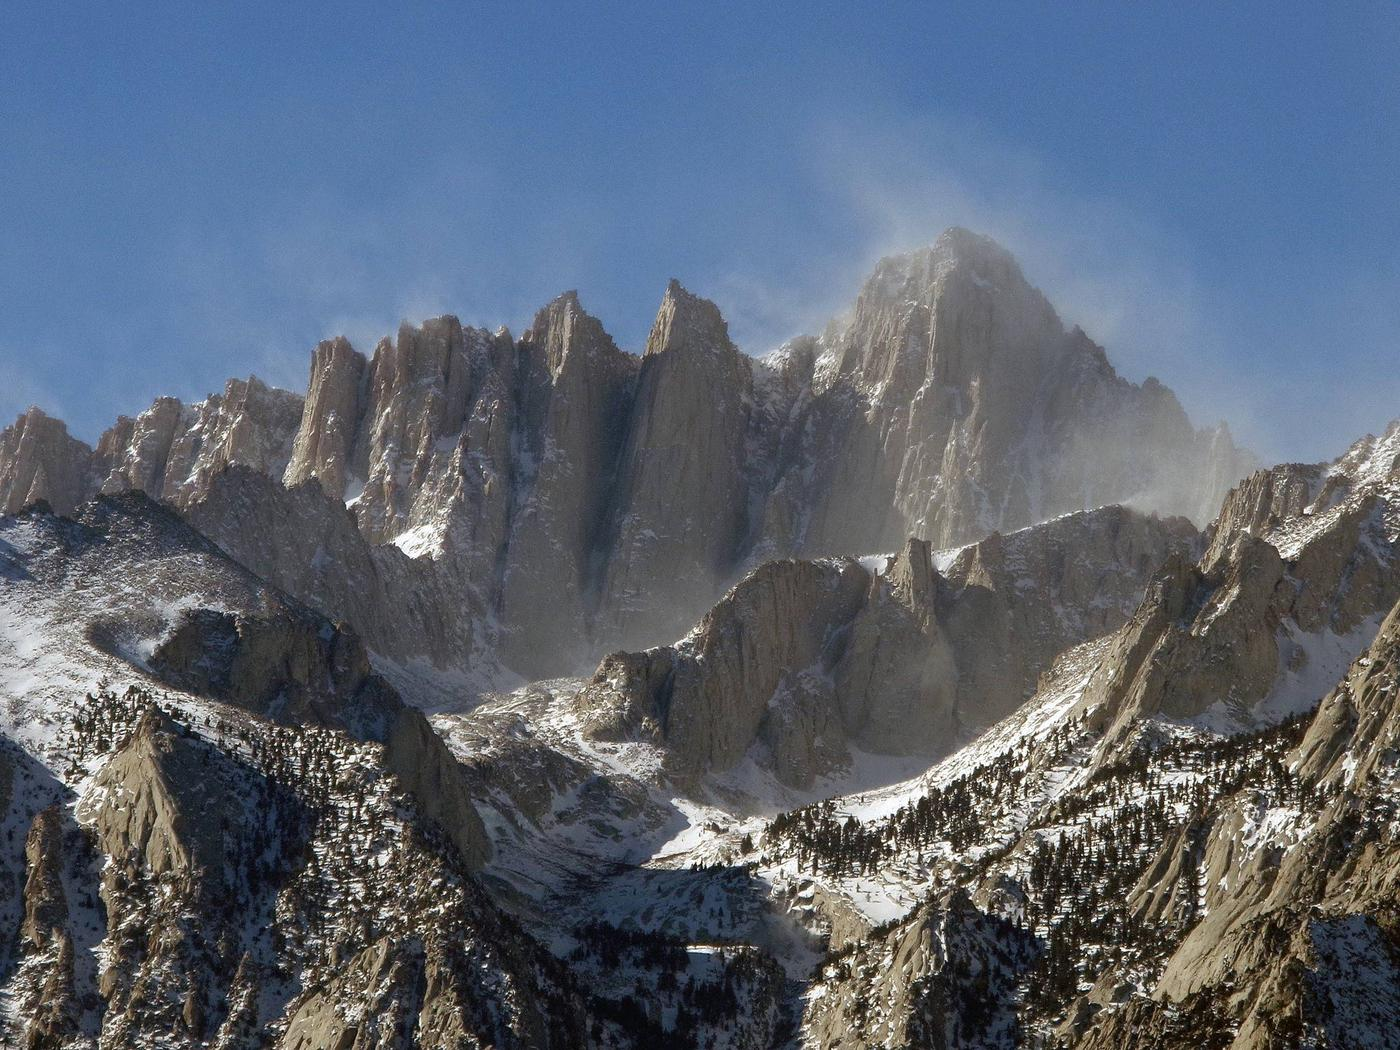 Wind blows snow from the summit of Mount Whitney. The beautiful veil of snow blowing from the summit also indicates the extreme conditions that may be encountered on Mount Whitney.